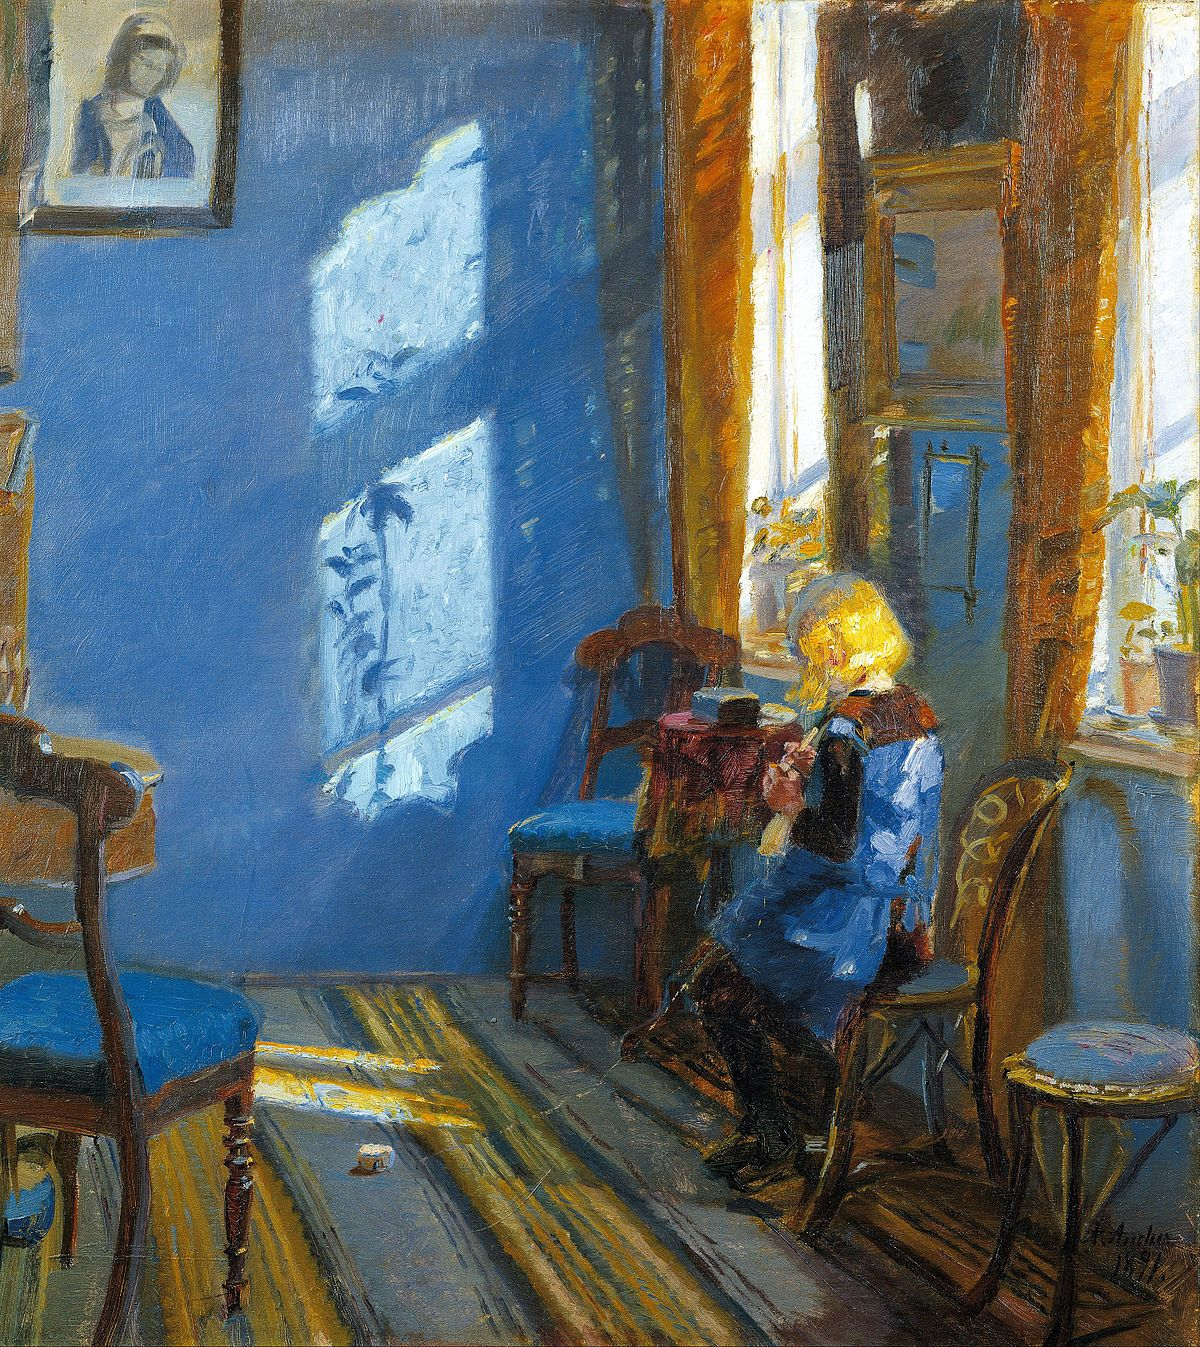 Blue Room: Sunlight In The Blue Room